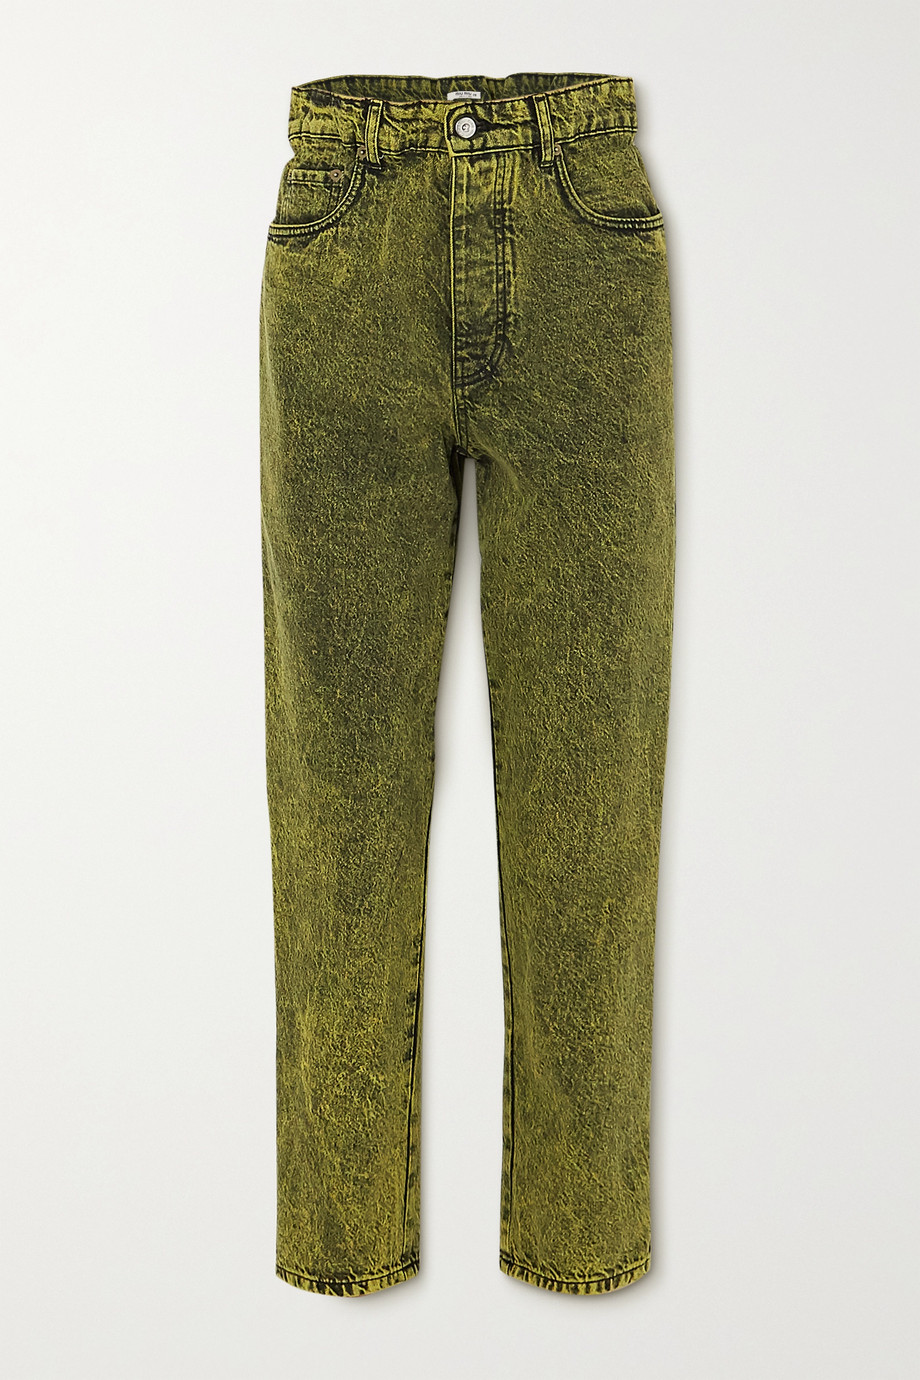 Miu Miu Acid-wash denim jeans